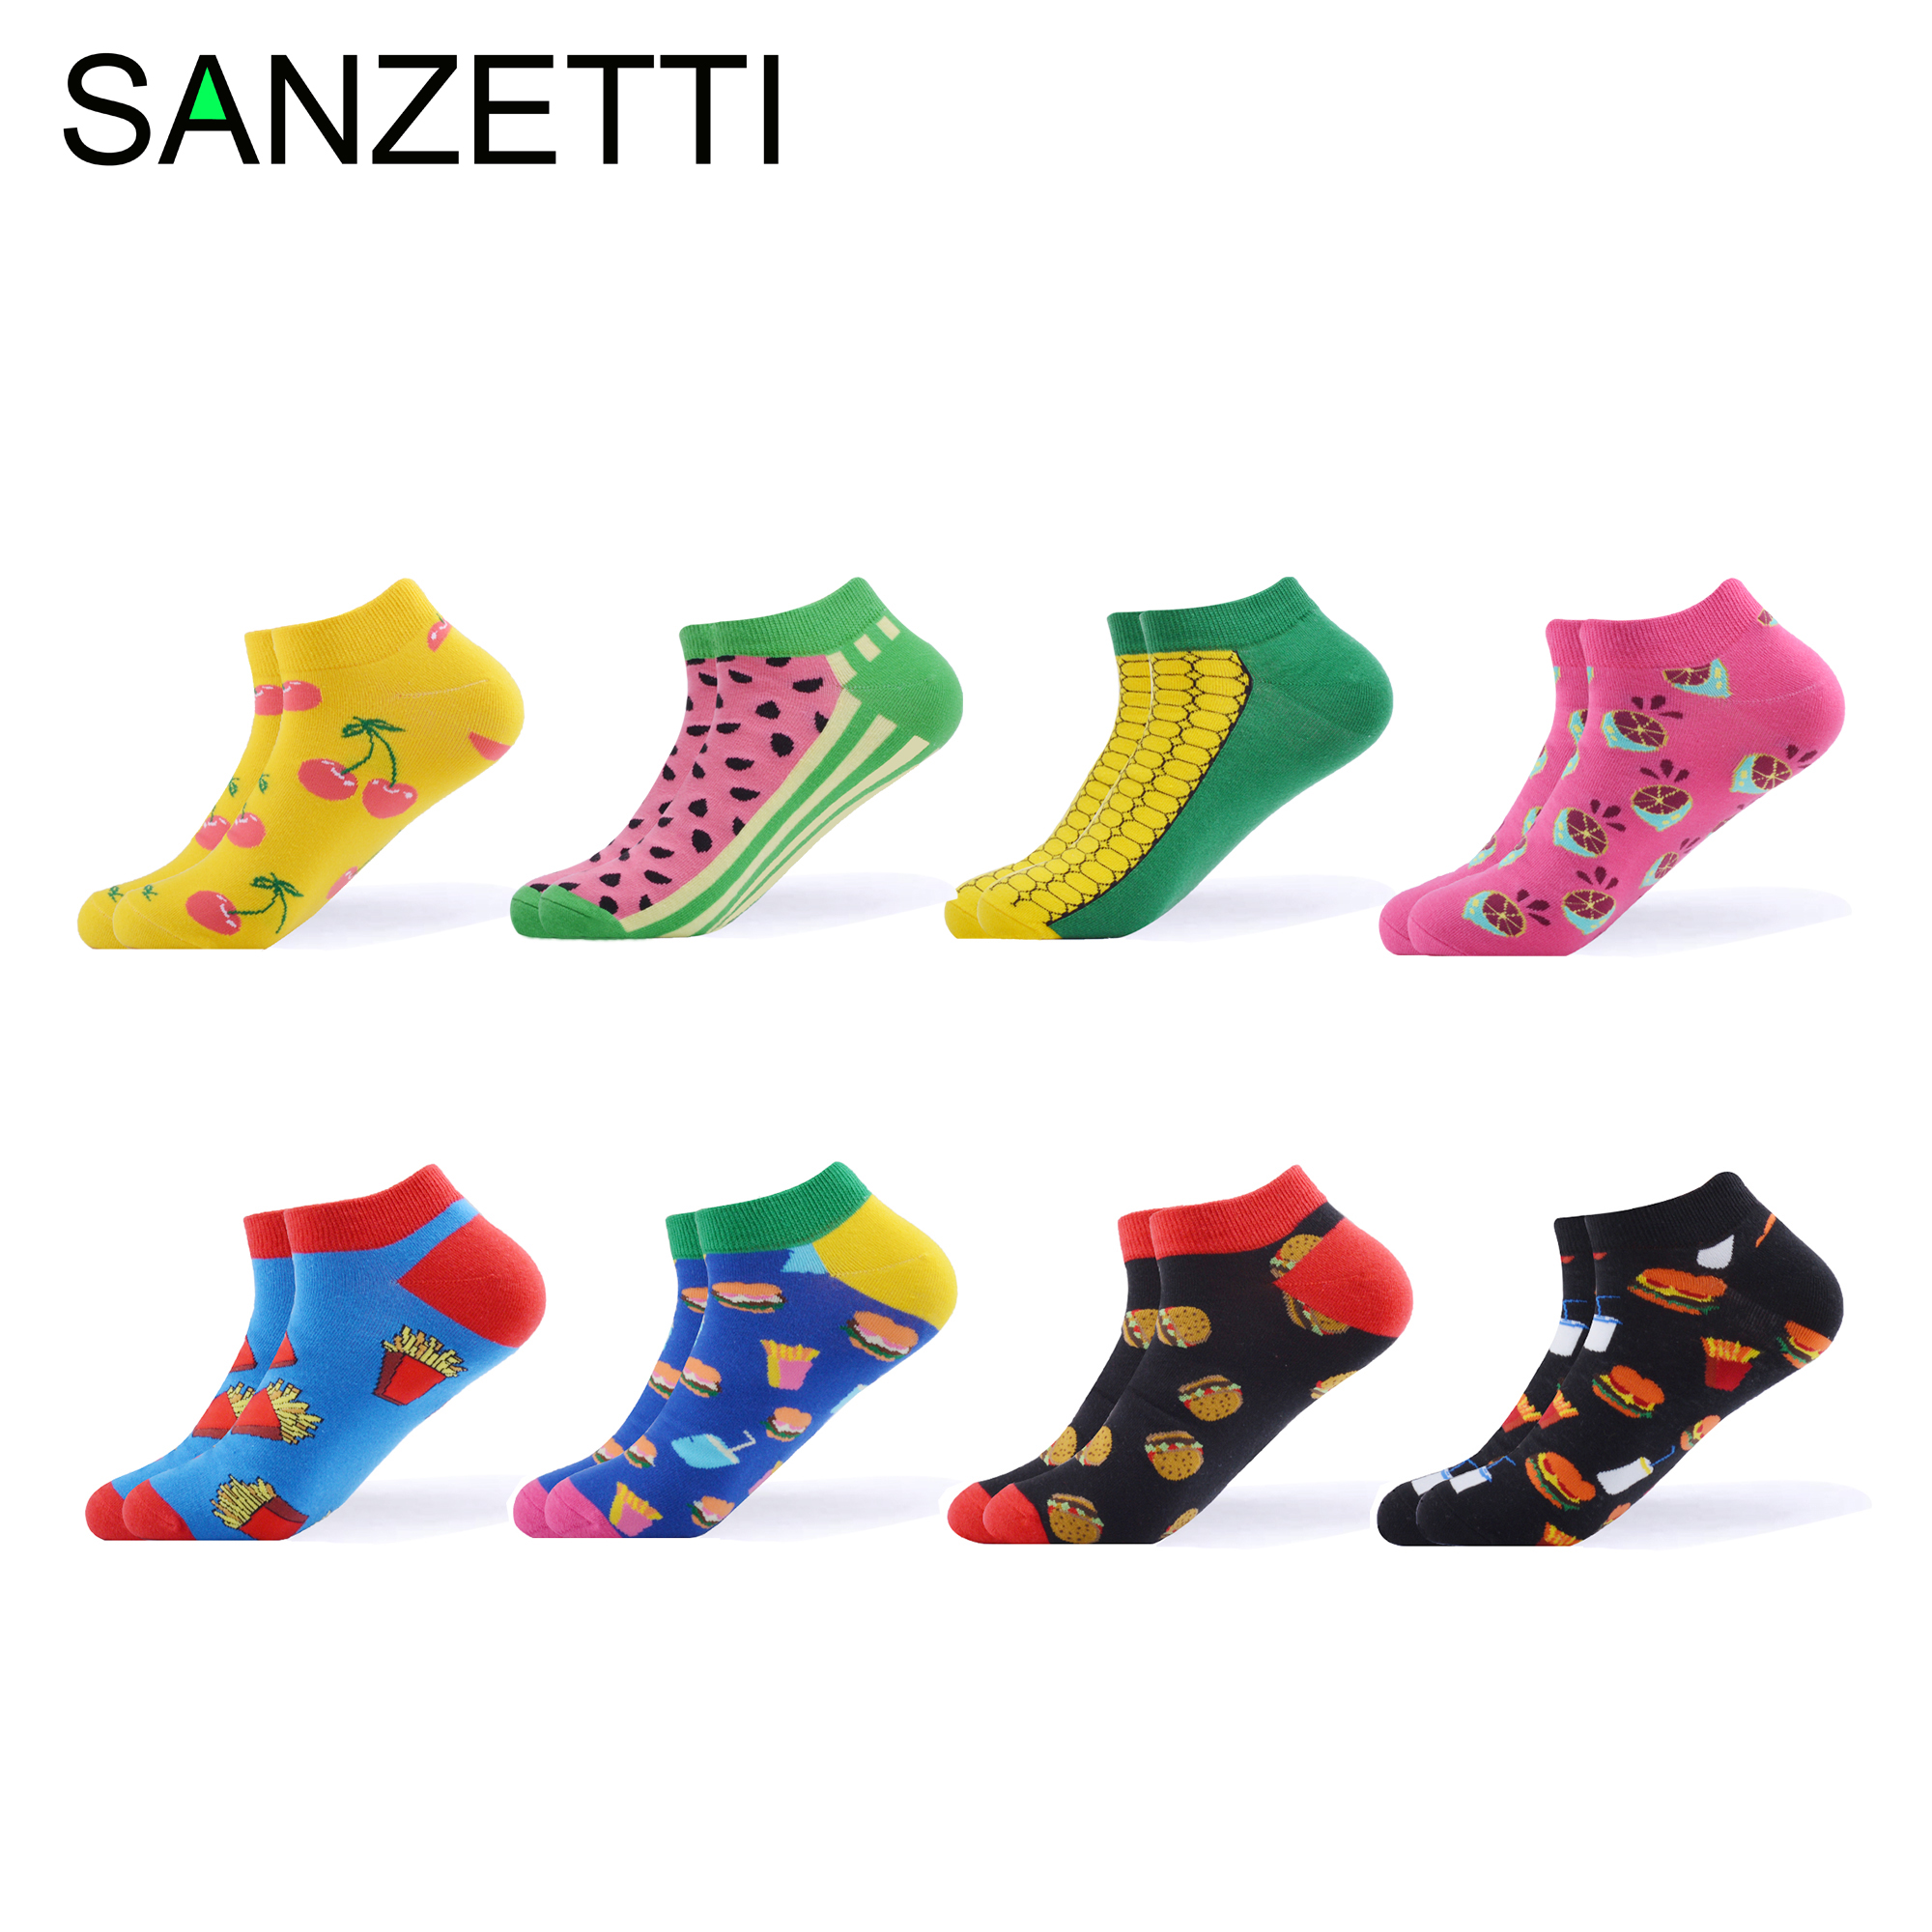 Sanzetti 5 Pairs/lot Colorful Mens Combed Cotton Causal Dress Wedding Socks Dot Pattern Novelty Funny Crew Skateboard Socks Underwear & Sleepwears